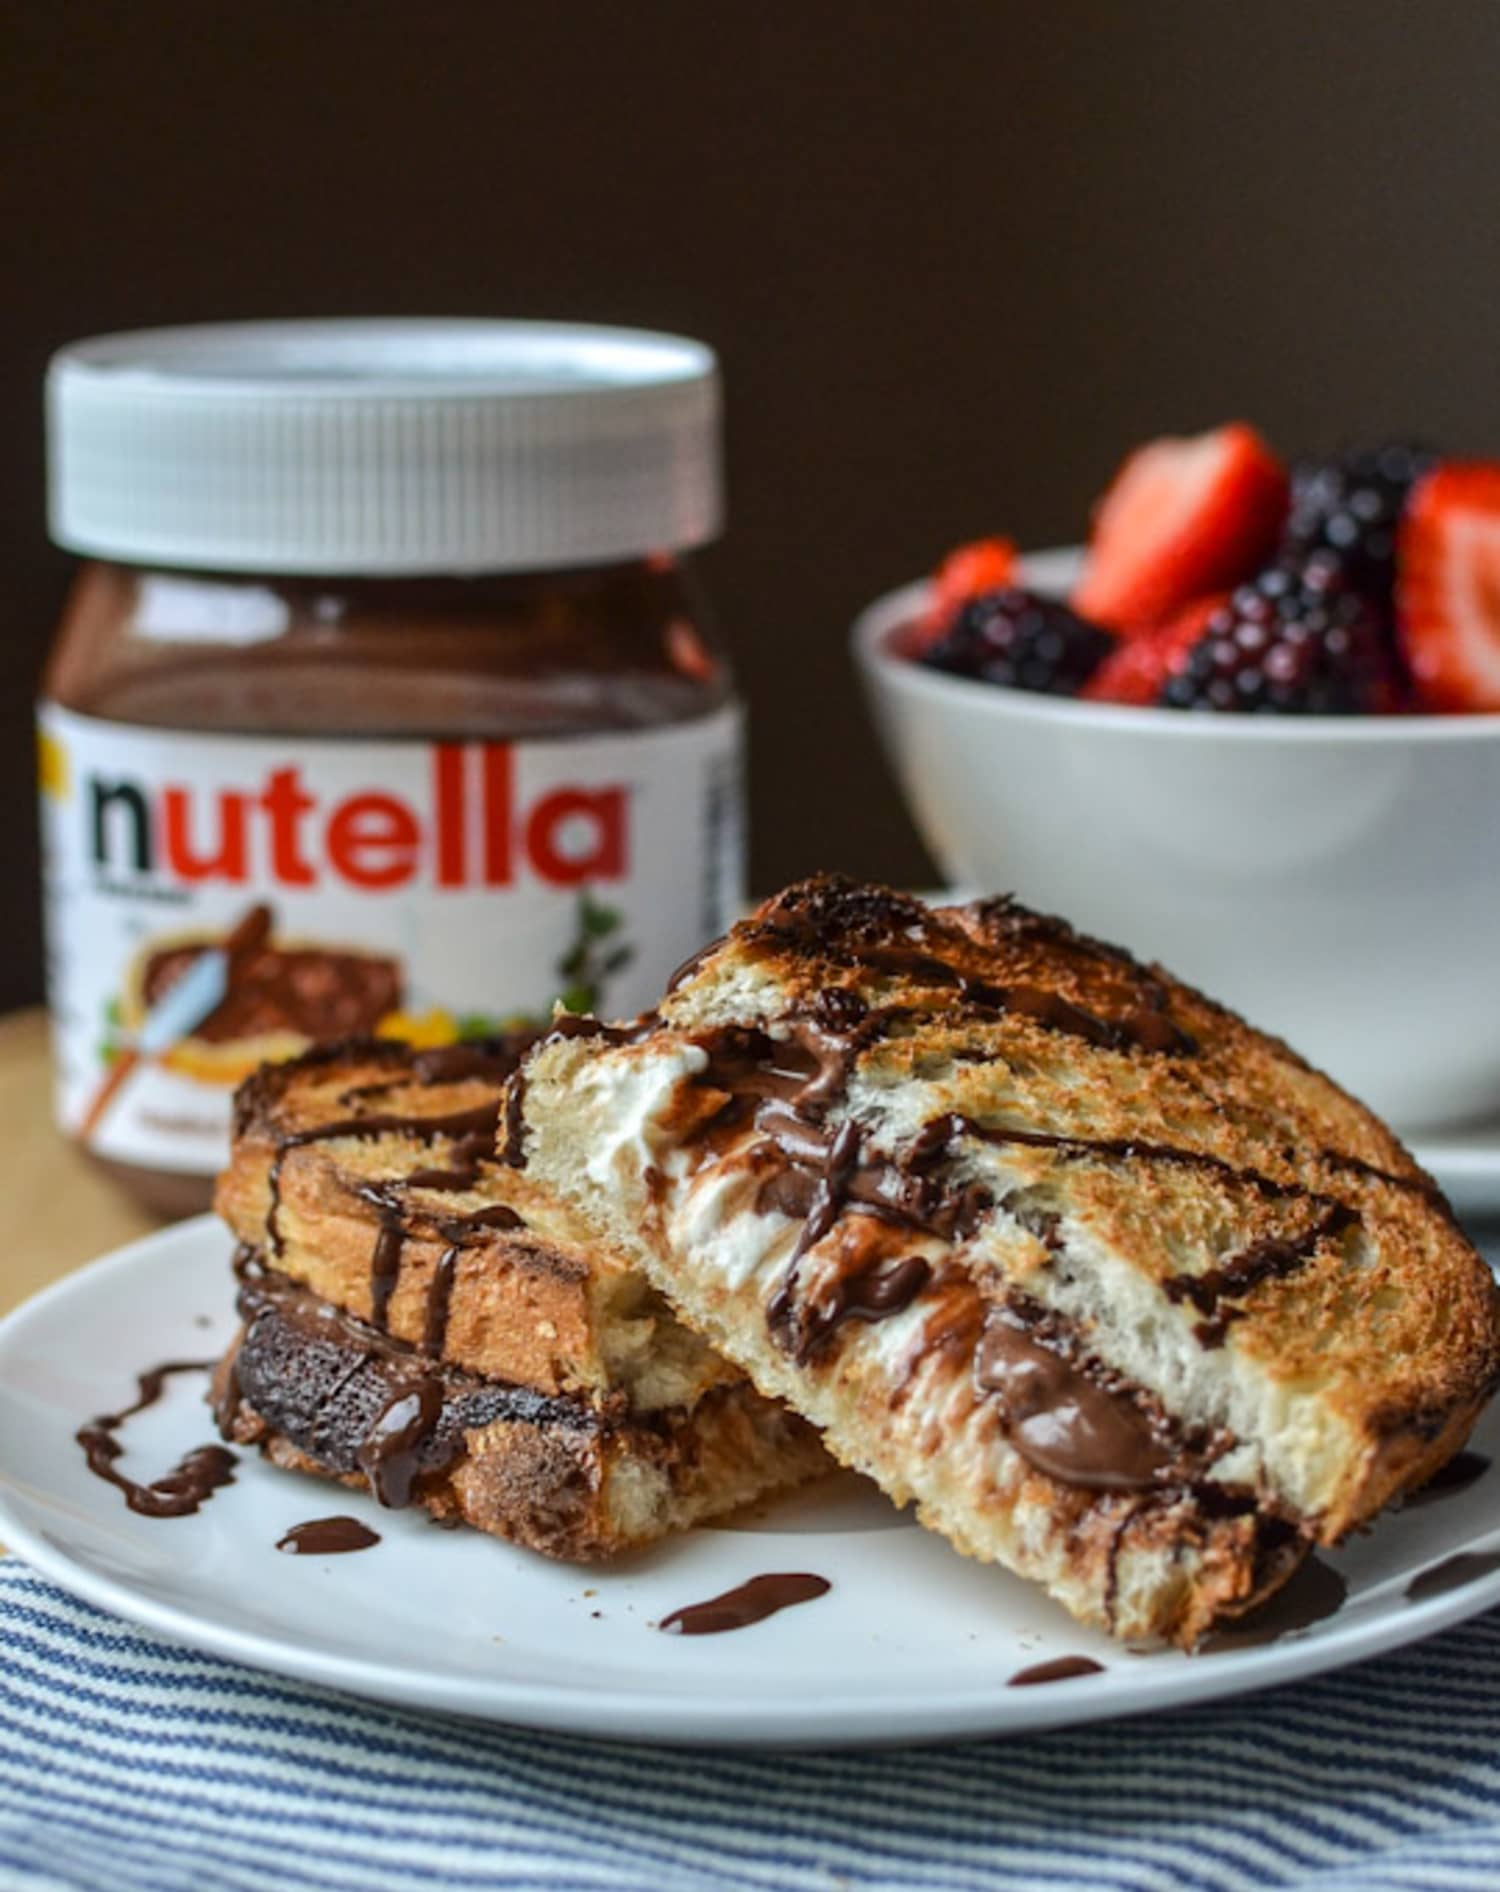 Dessert Recipe Hot Baked Nutella Cream Cheese Sandwich Kitchn